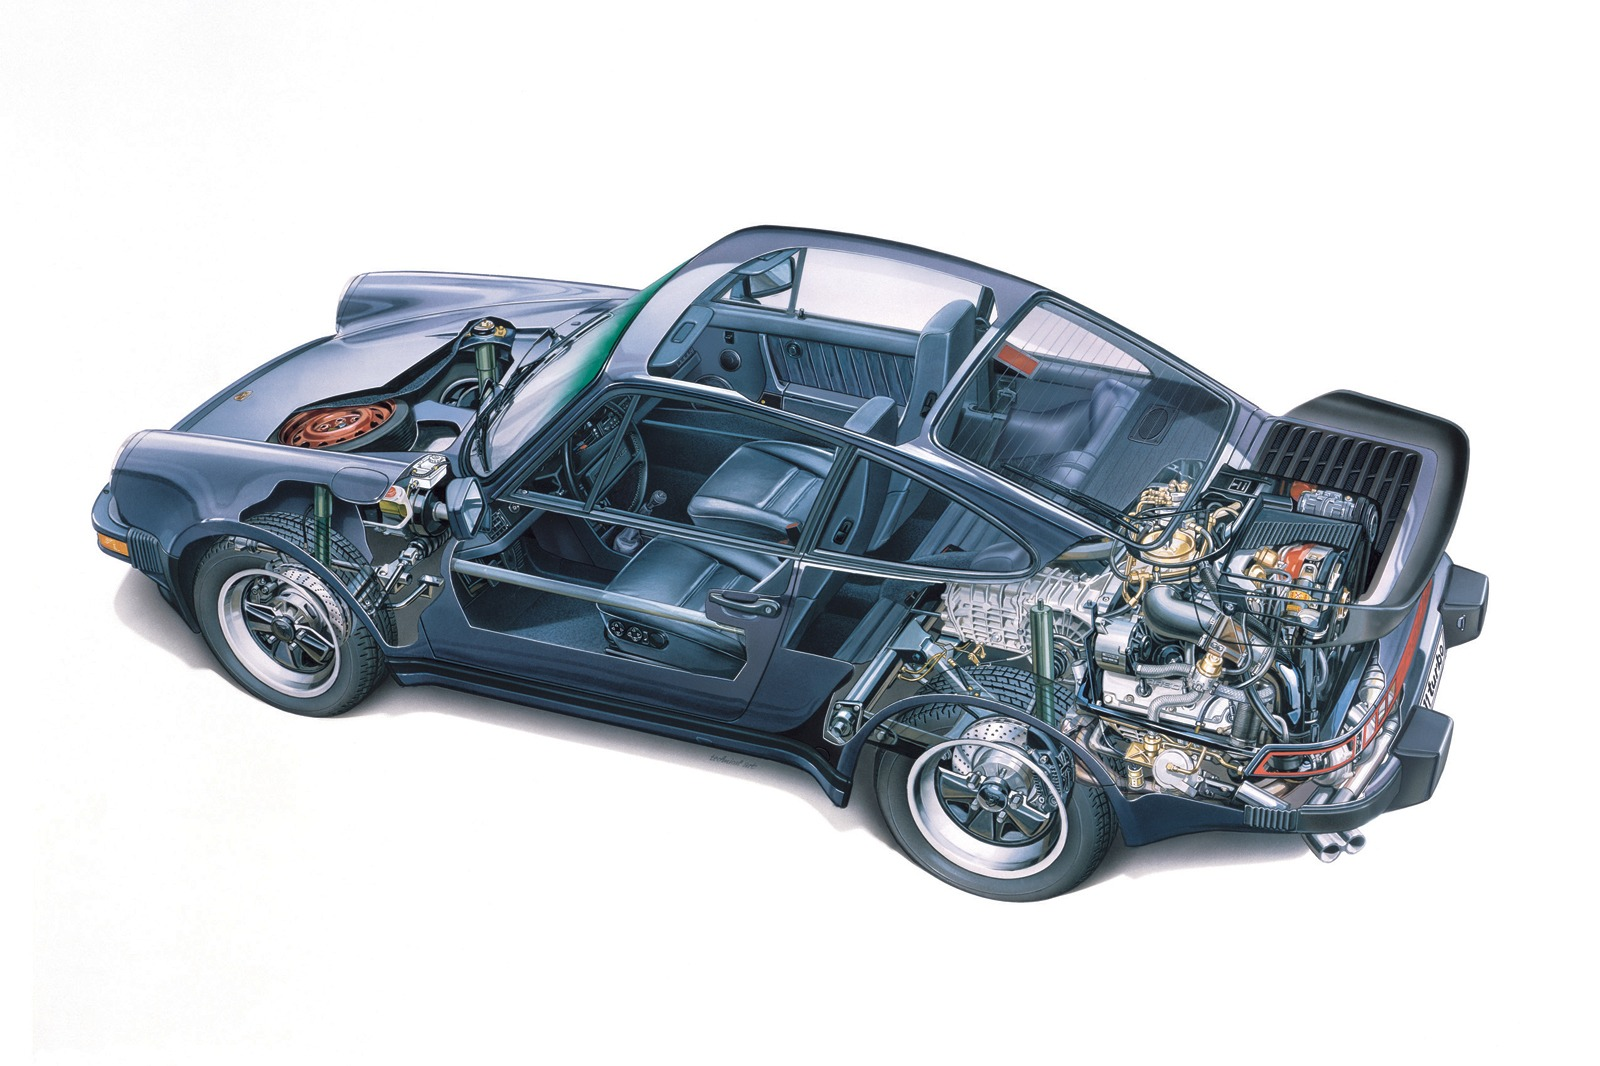 1988 porsche 911 turbo cutaway from bavaria with love